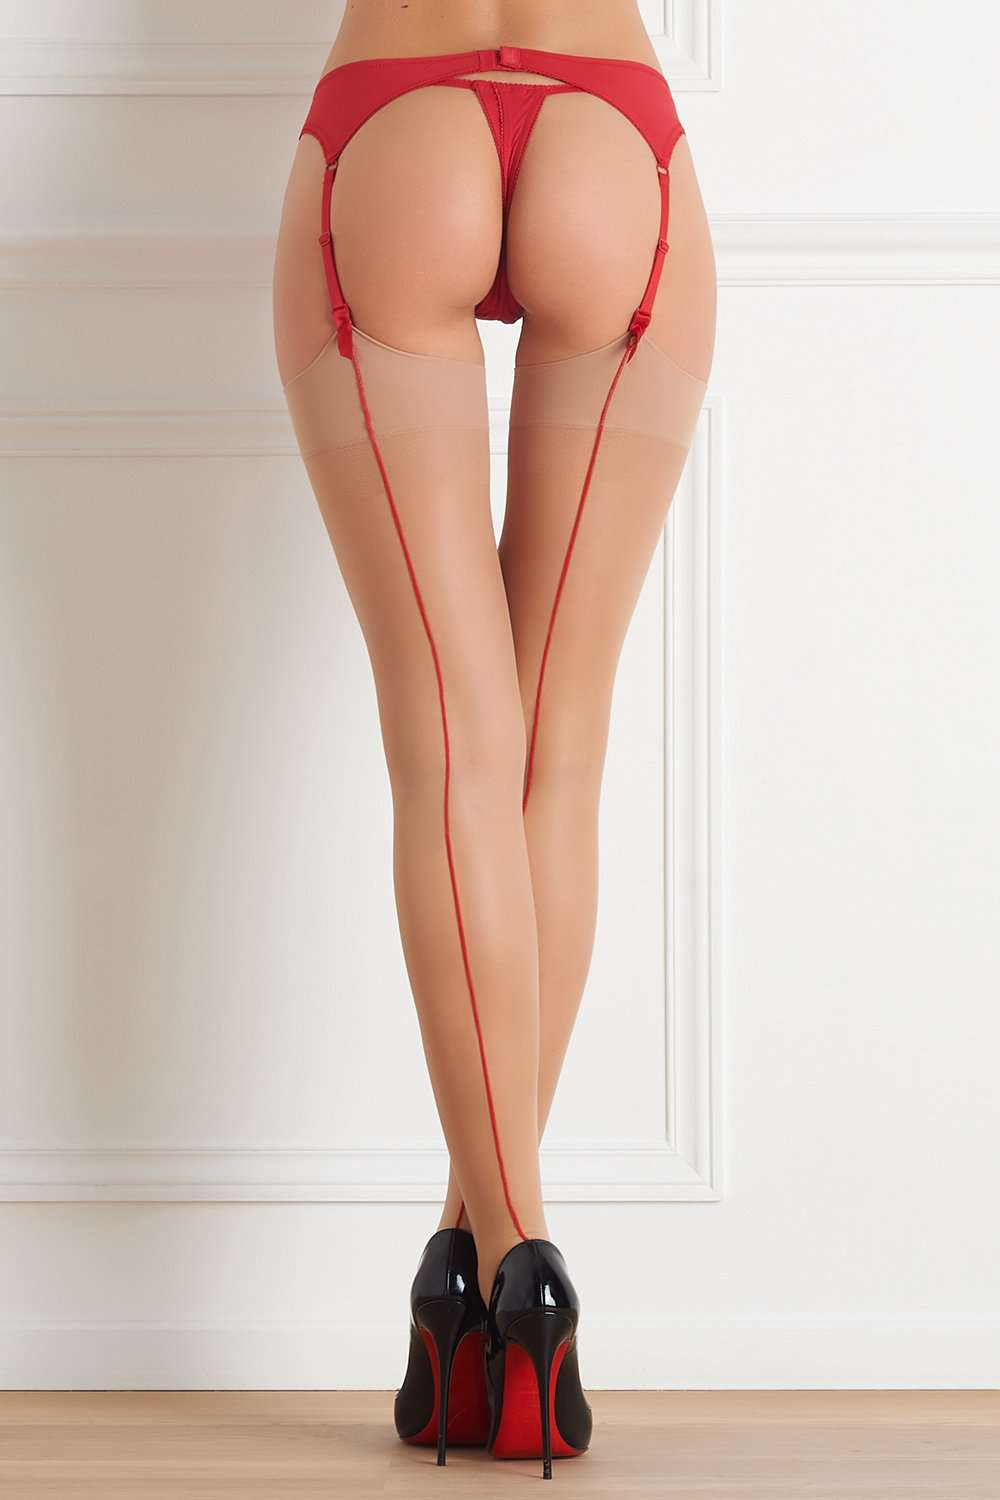 0325a8a3a61 Maison Close Nude Stockings with Red Back Seam